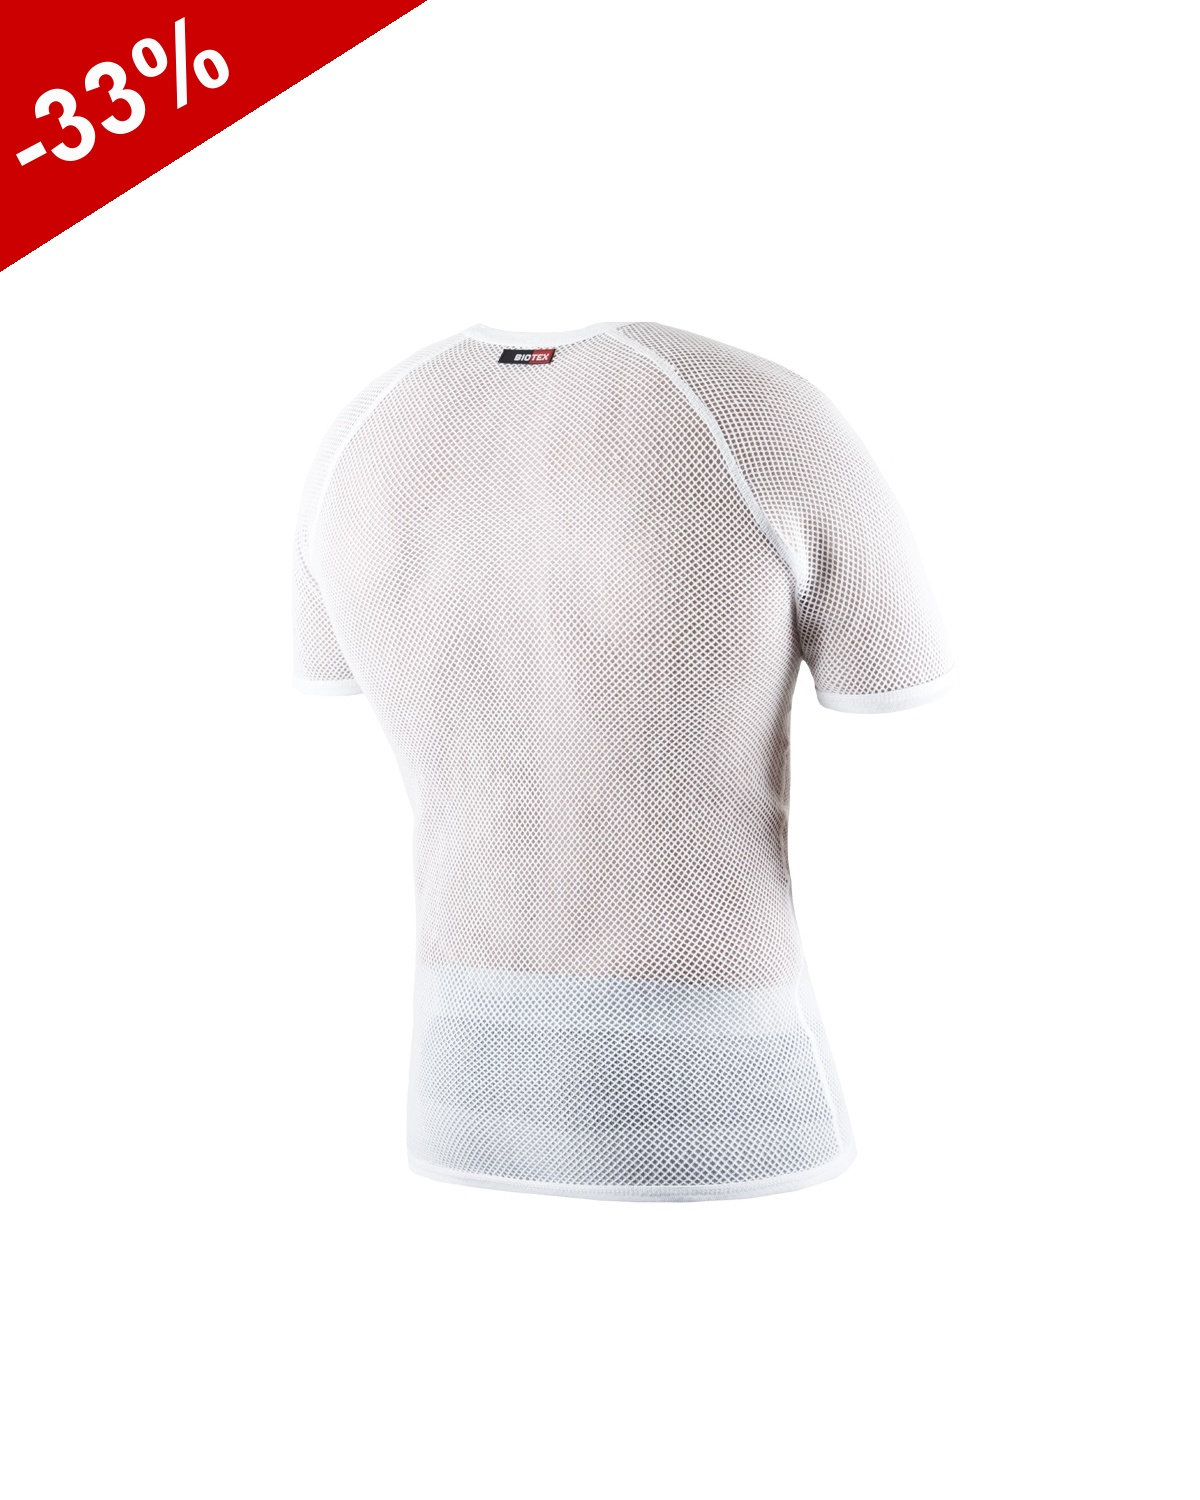 Sous Couche BIOTEX POWER Manches Court - Blanc